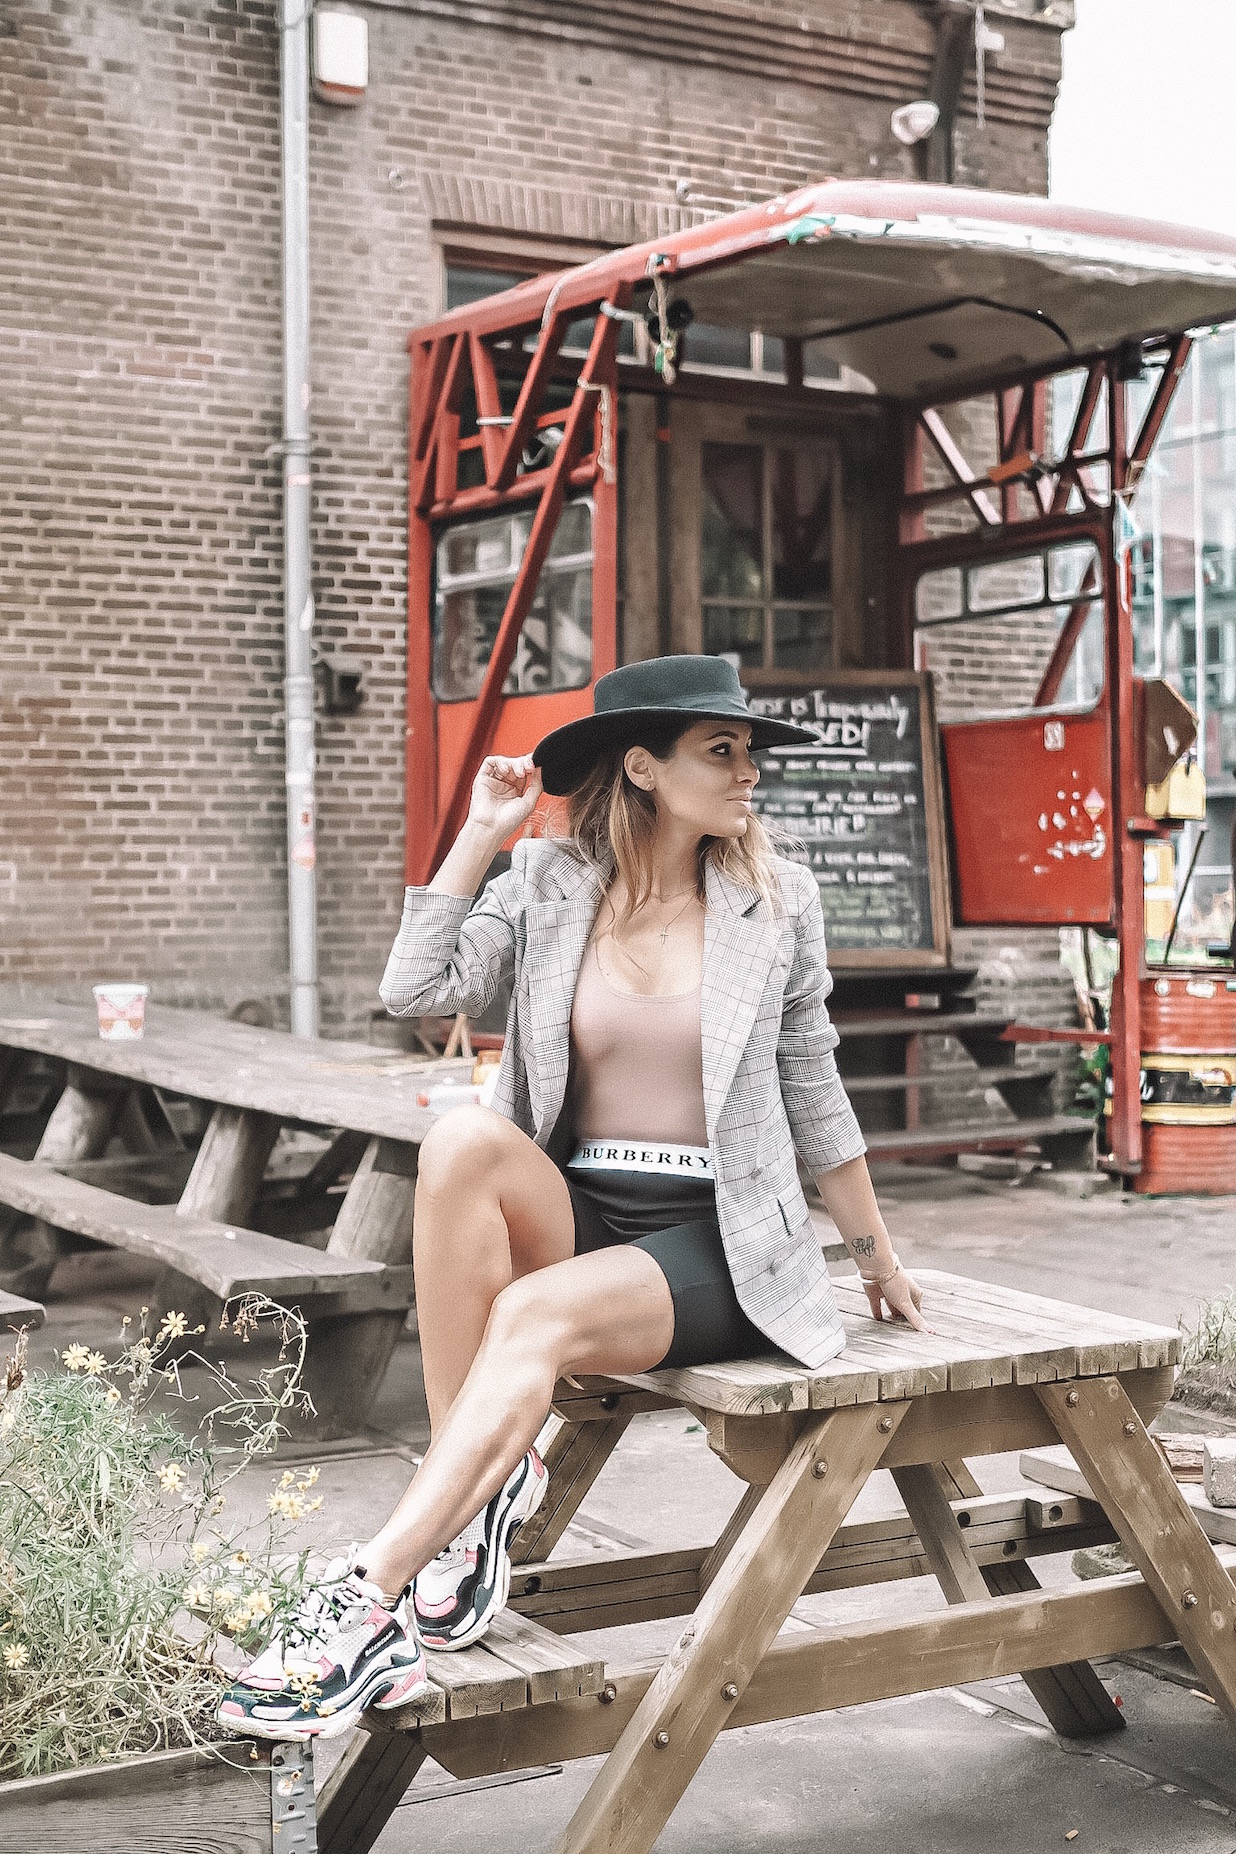 amsterdam influencers revolve around the world